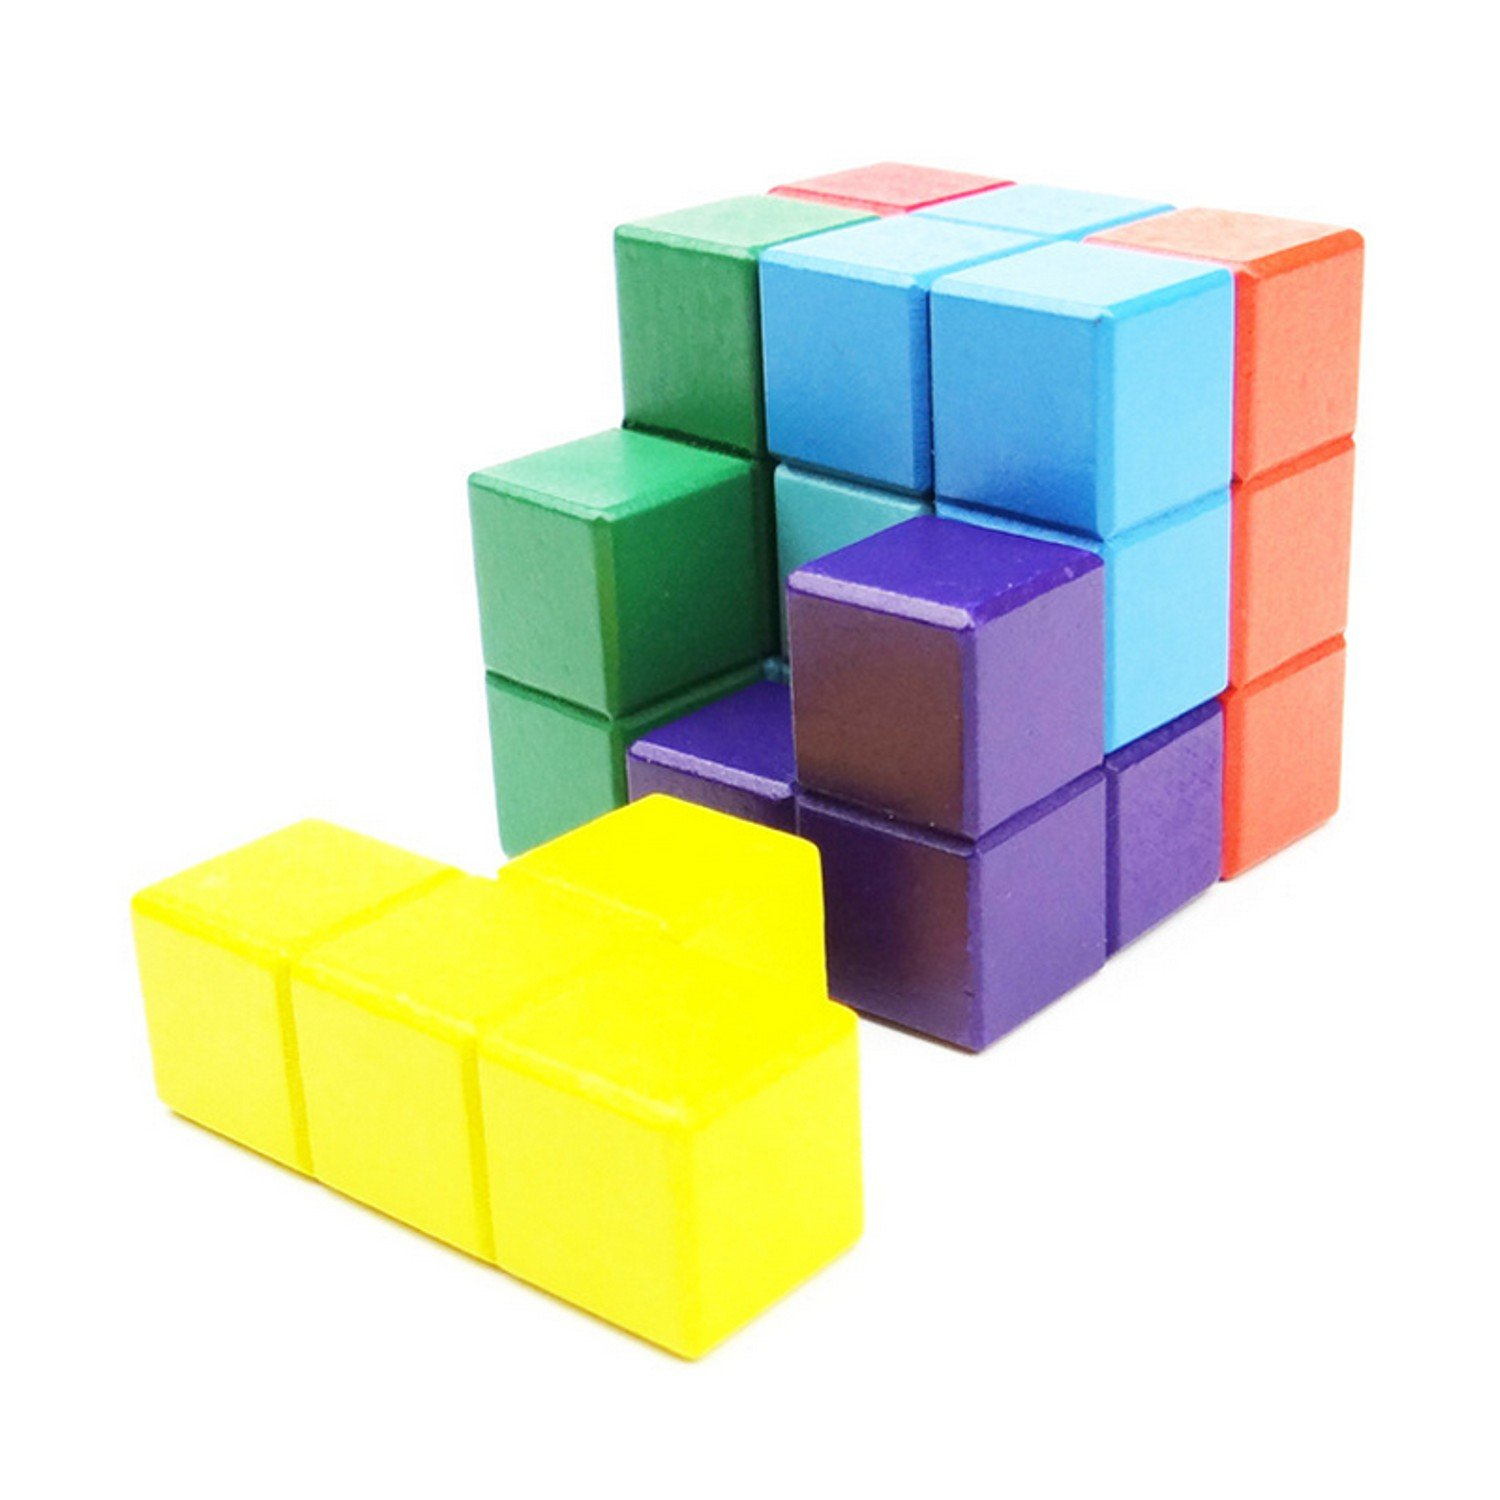 1 Set Educational Novelty 3D Wooden Puzzle Toys Children Tetris Blocks Magic Cube